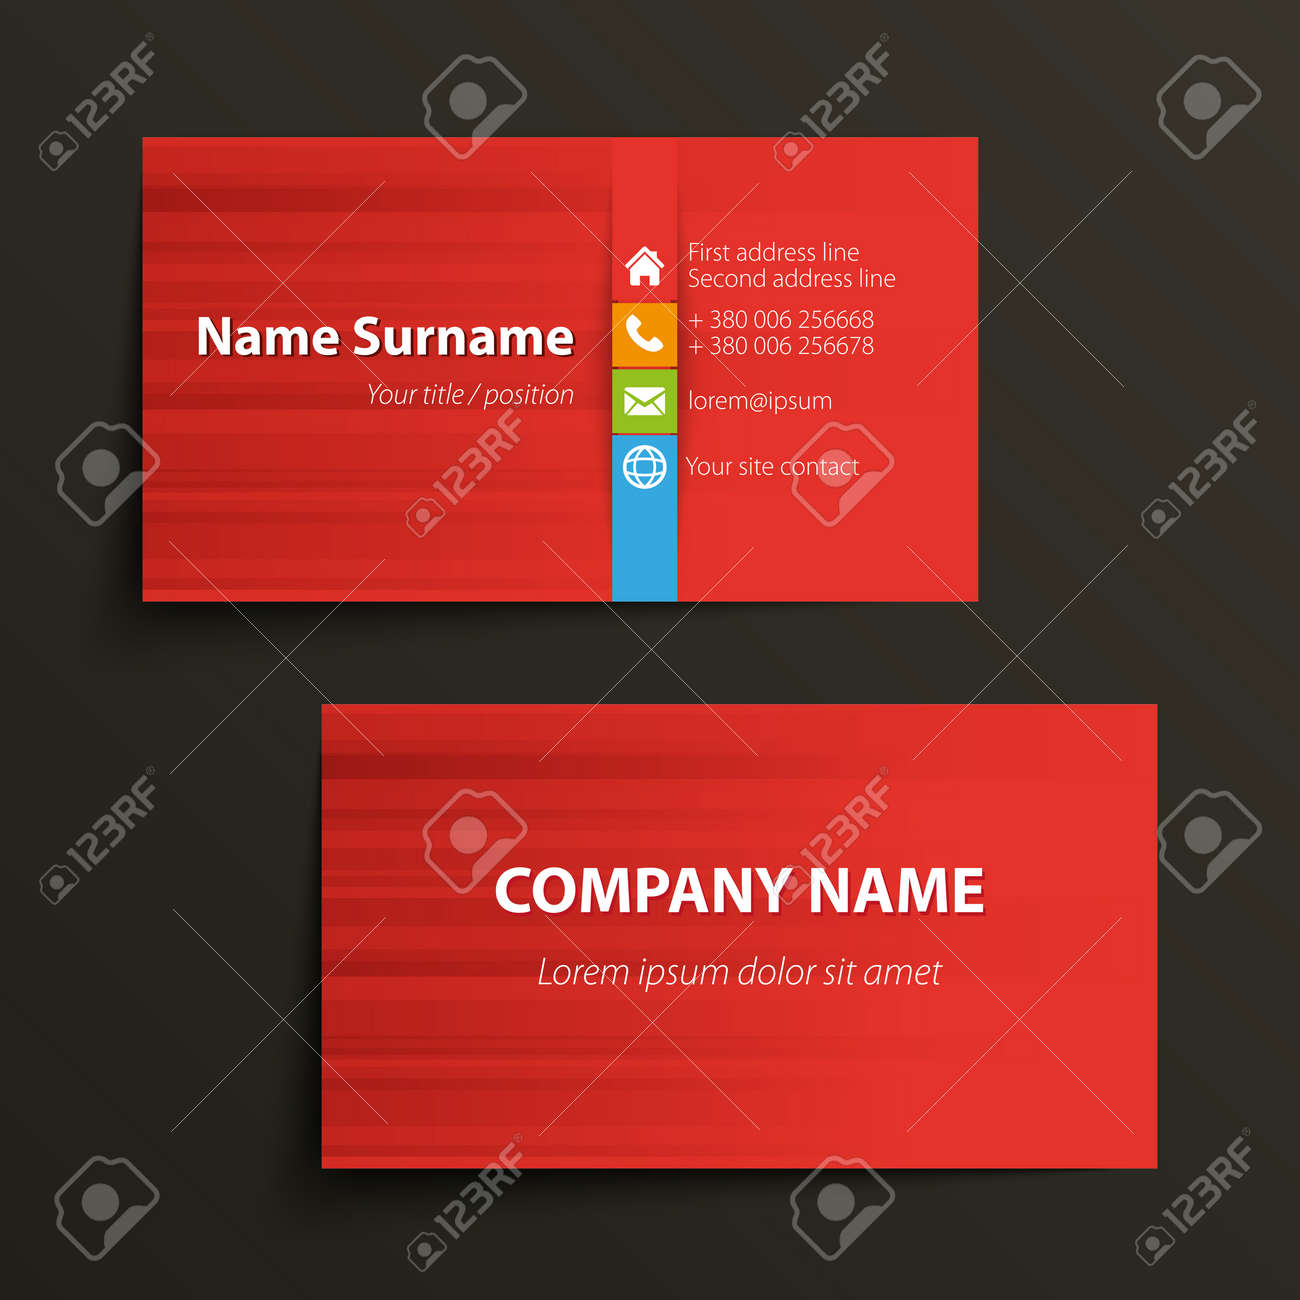 Modern simple business card template vector format royalty free modern simple business card template vector format stock vector 31276523 colourmoves